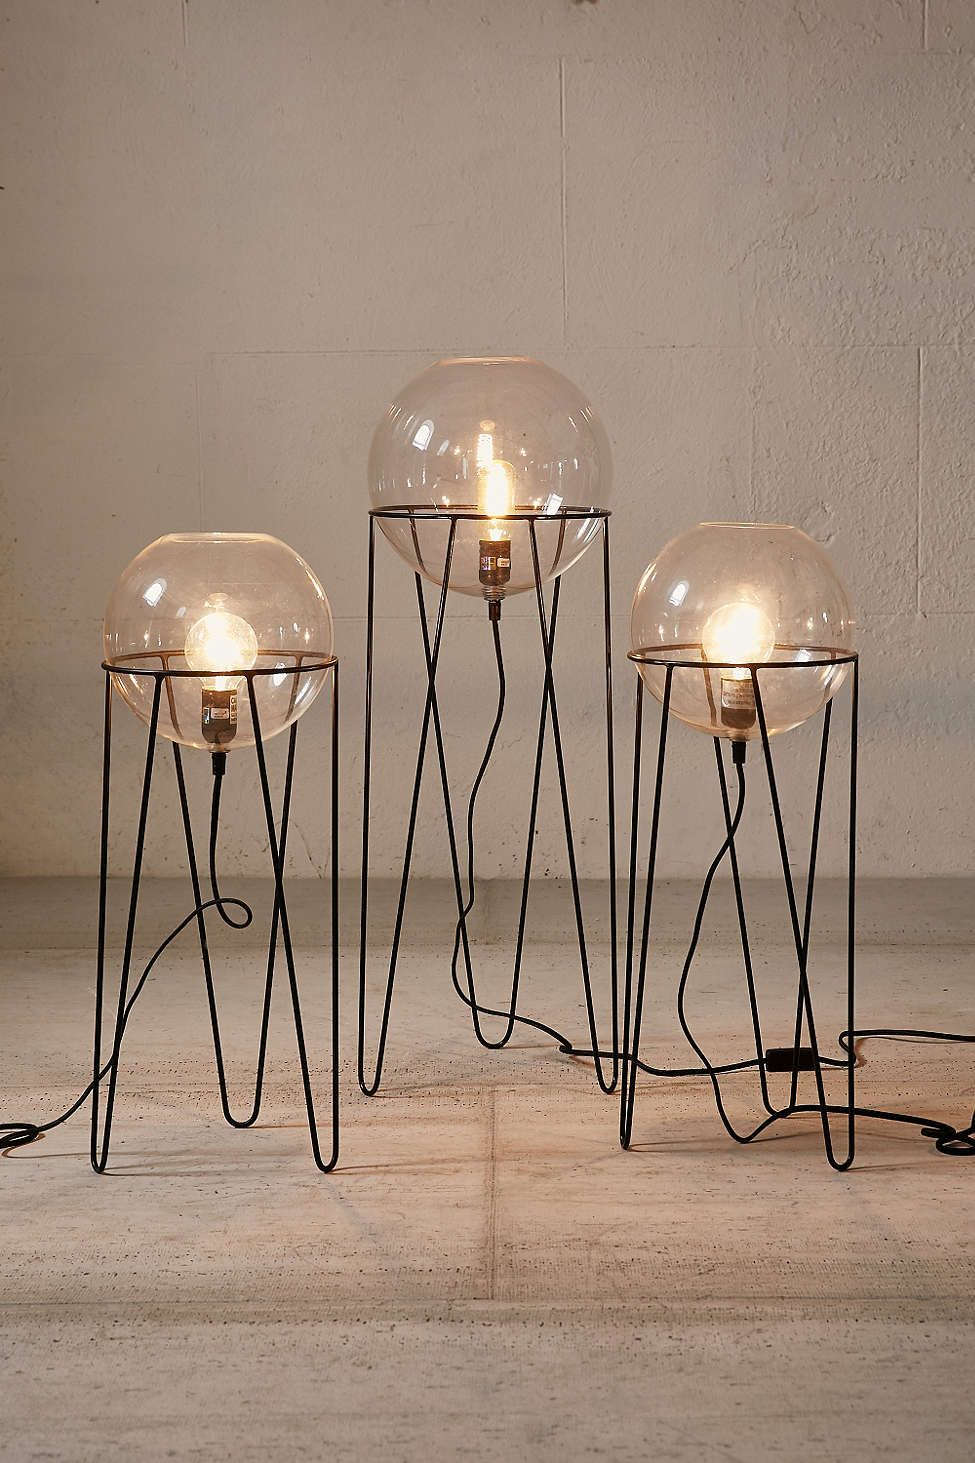 Lampe Pied Led Lampe Sur Pied Globe Baxter The Lighting Pinterest Lighting